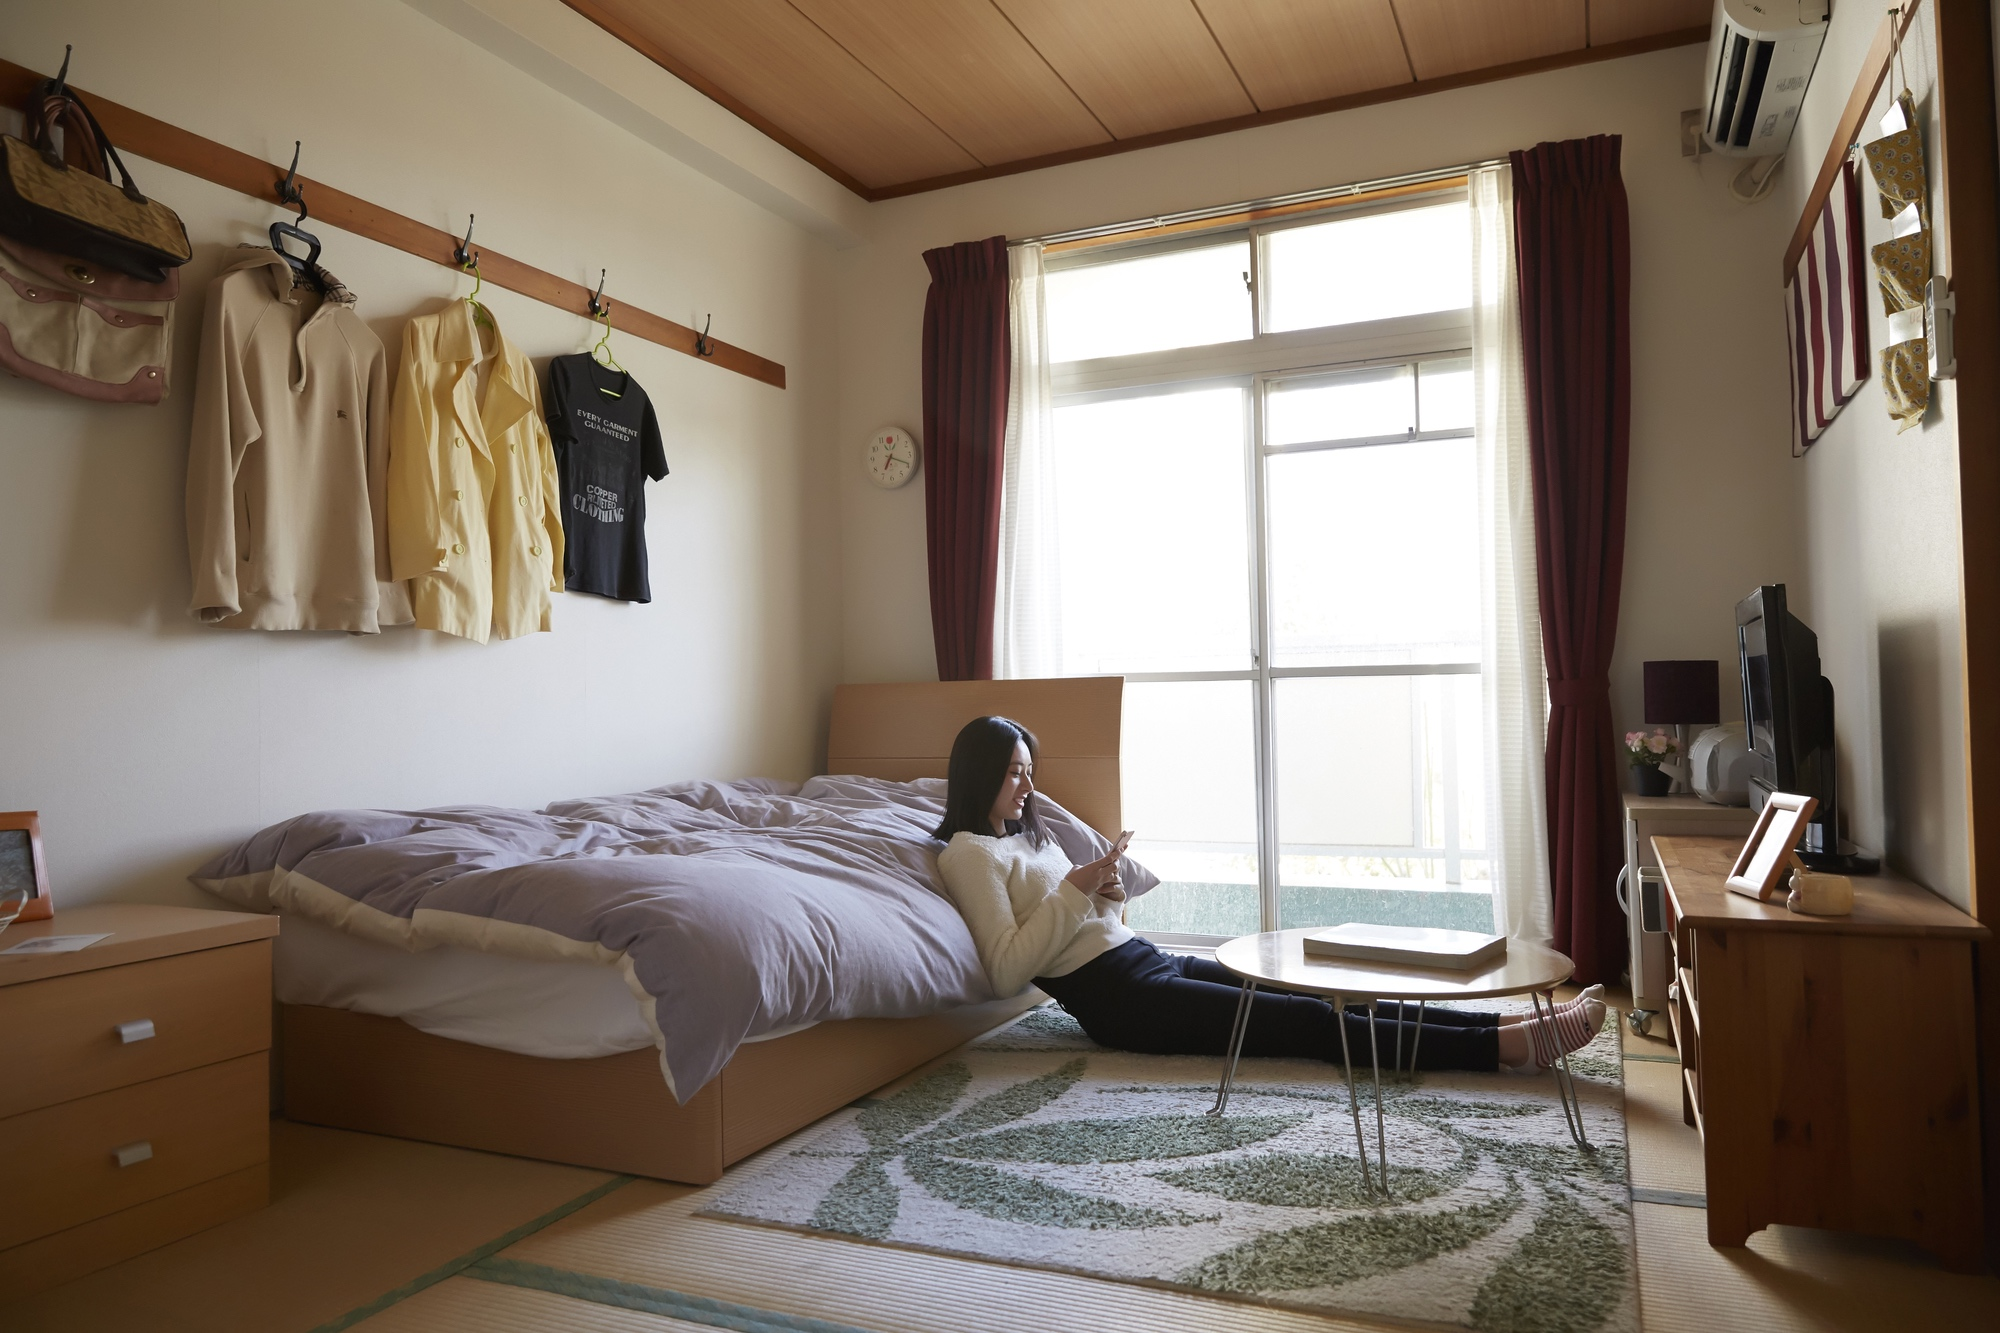 The Initial Costs Of Renting In Japan The Average Budget Is How Much Tsunagu Local